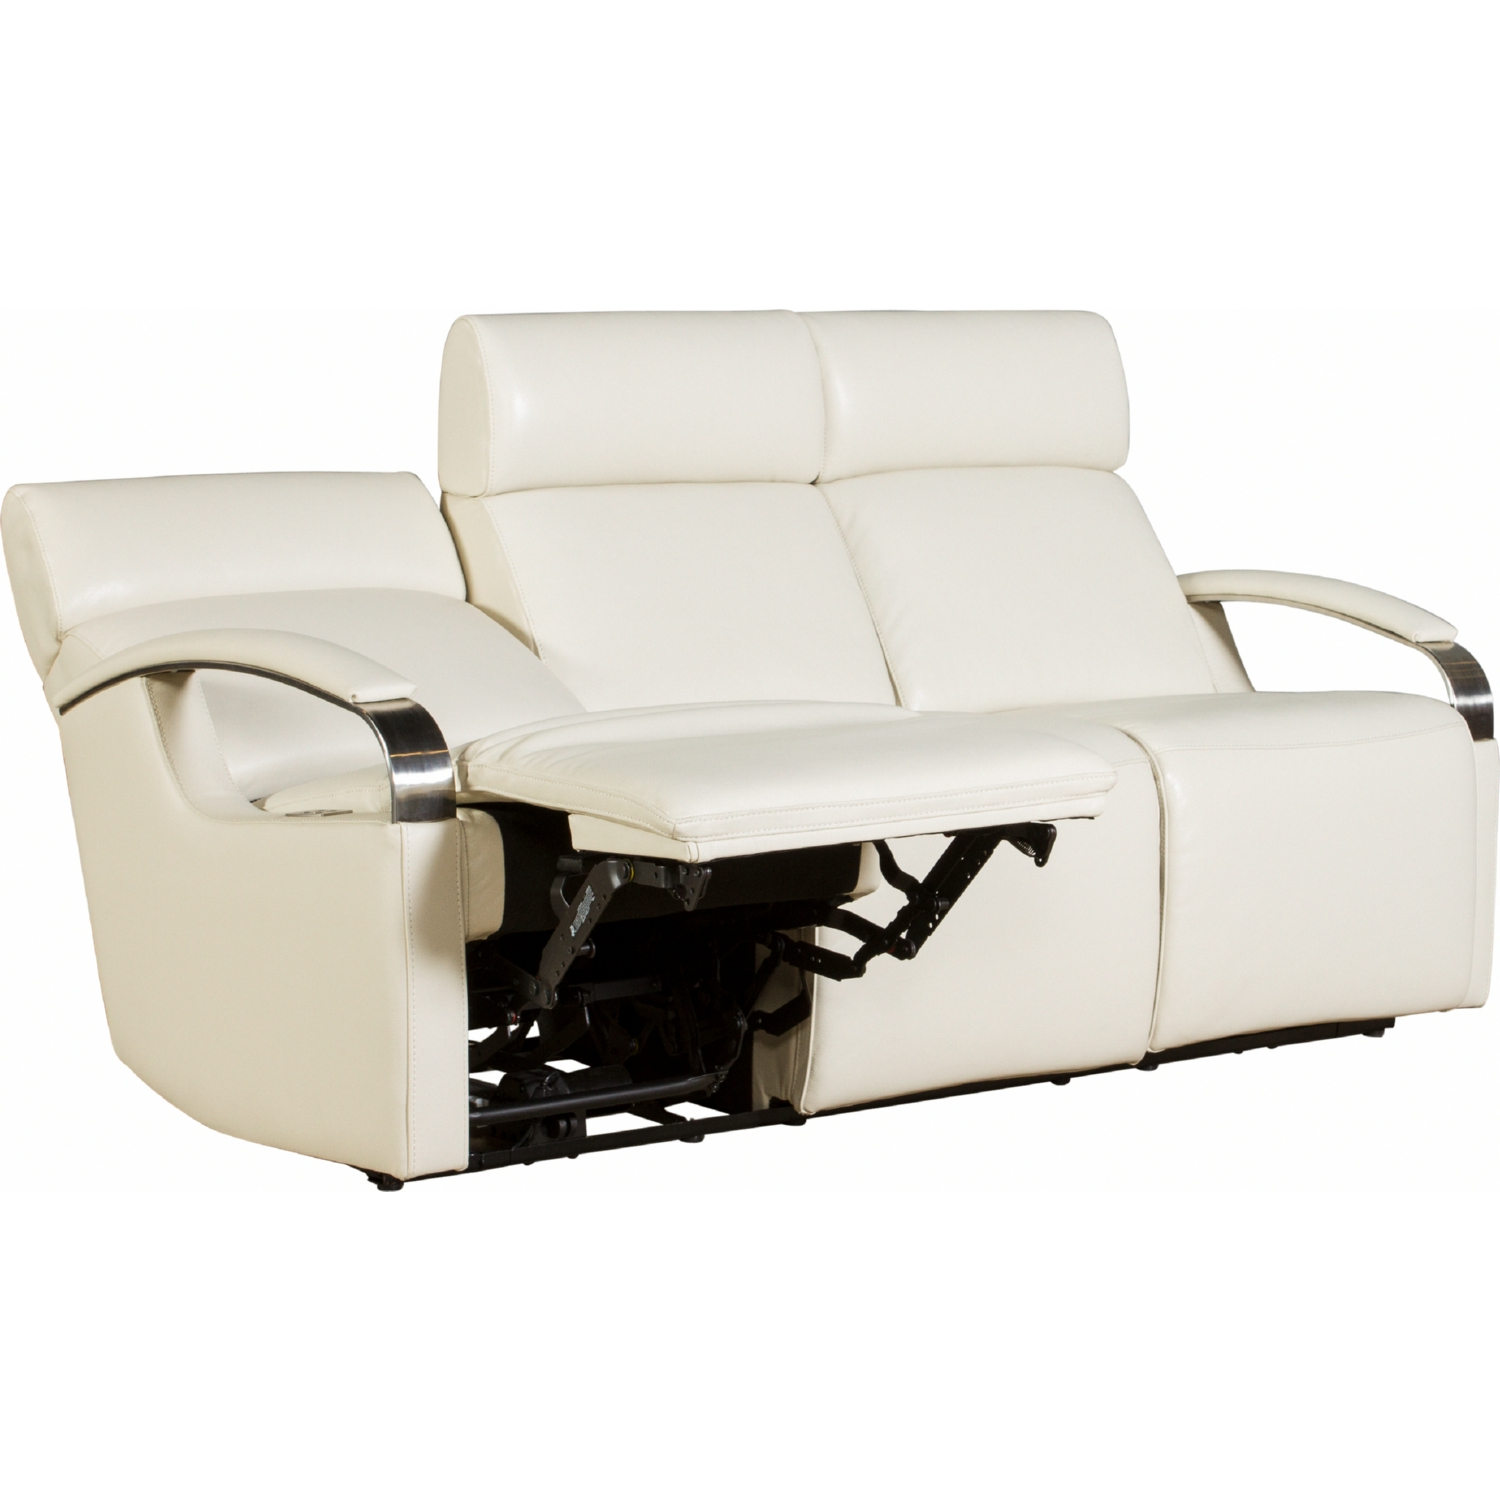 Cosmo Power Reclining Sofa By Barcalounger Lewis